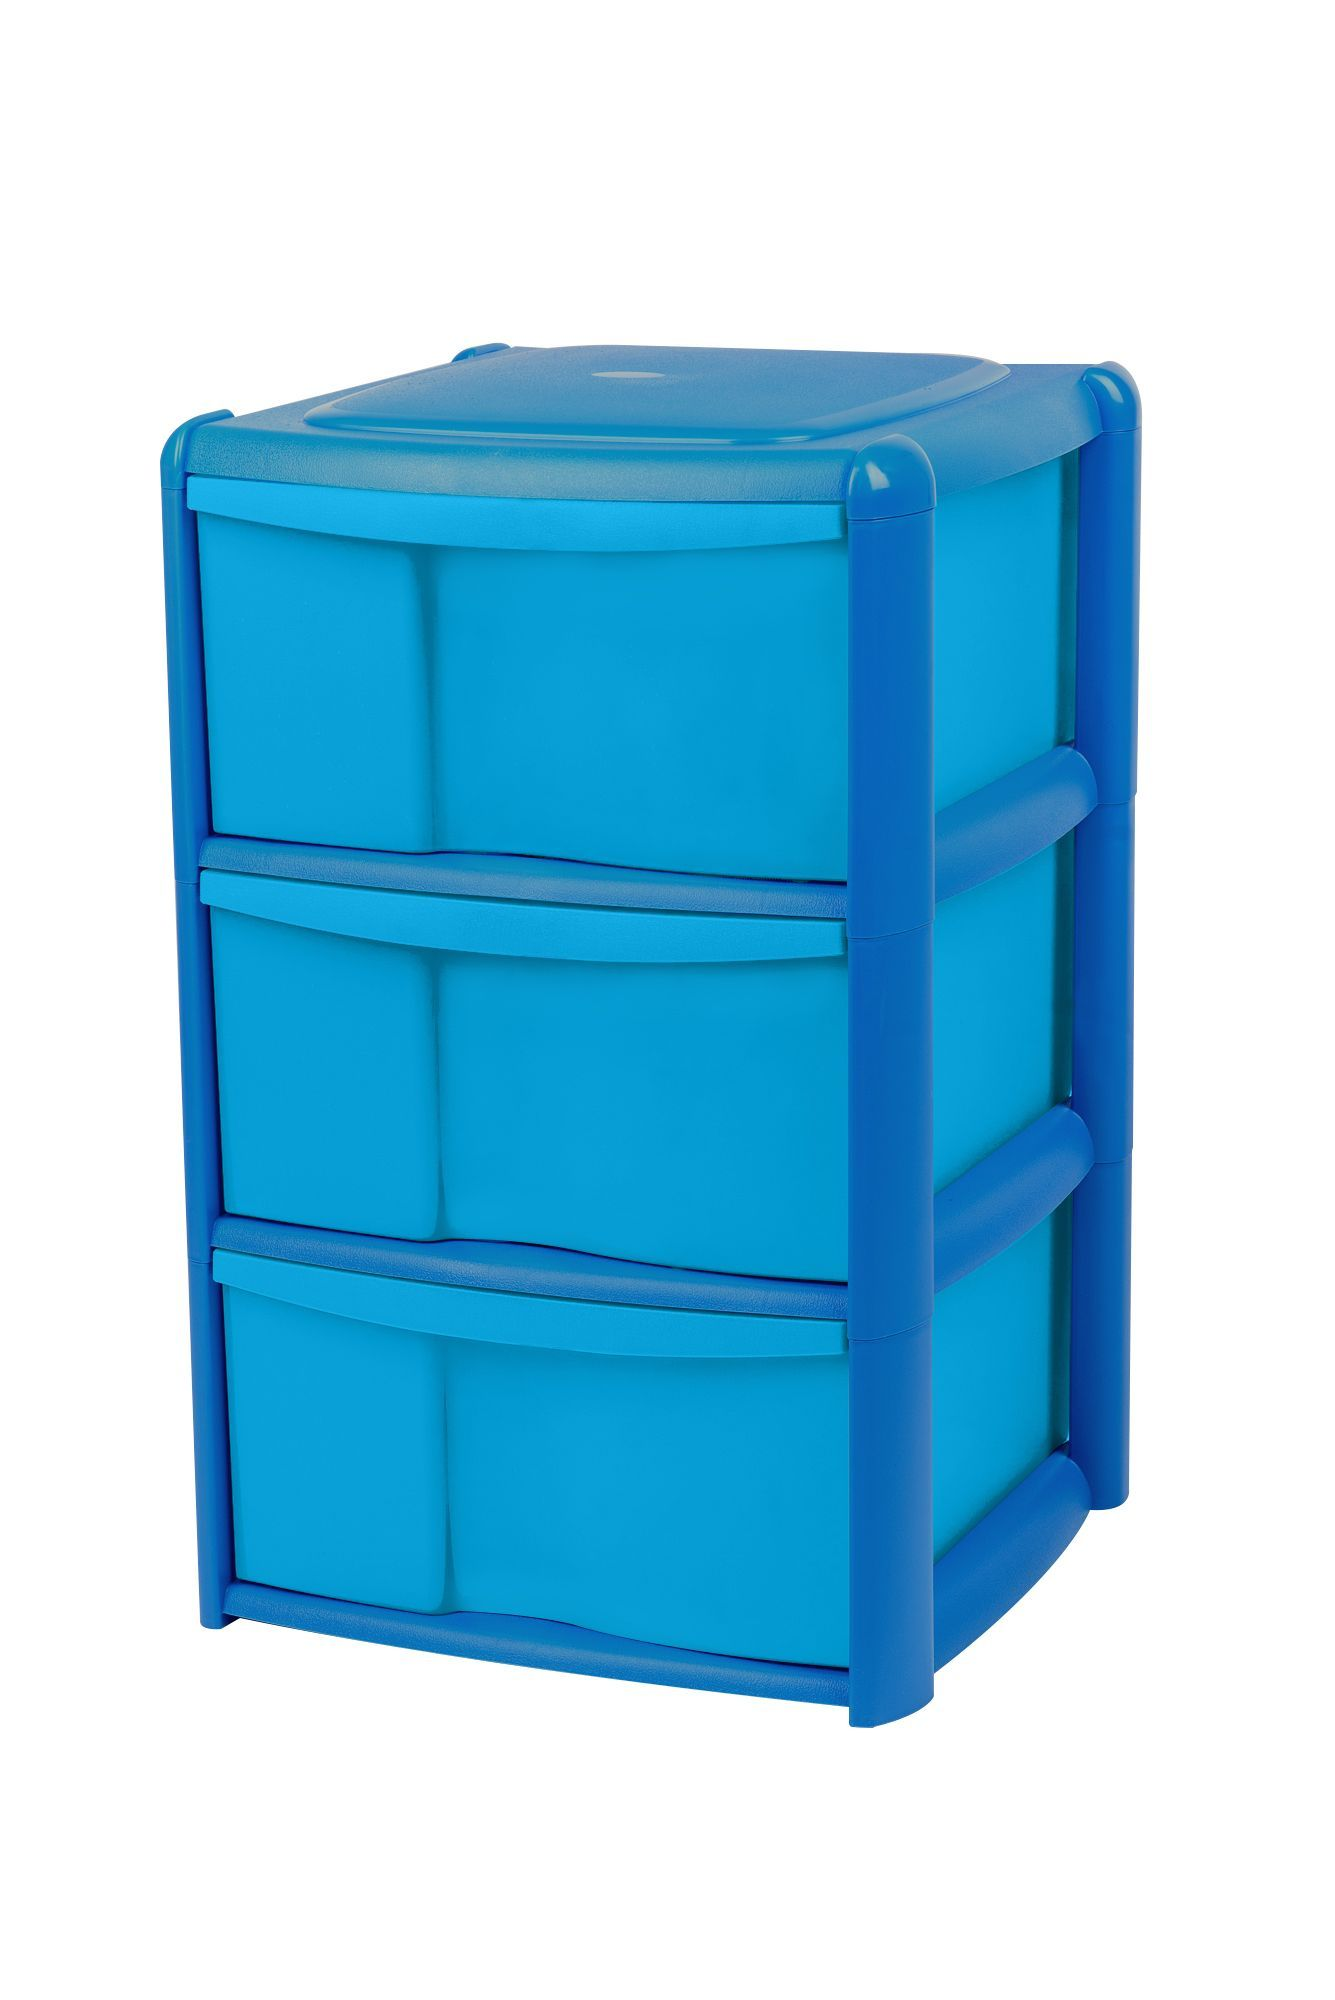 111 Reference Of Plastic Stacking Drawers Uk In 2020 Plastic Drawer Organizer Plastic Drawers Craft Storage Drawers